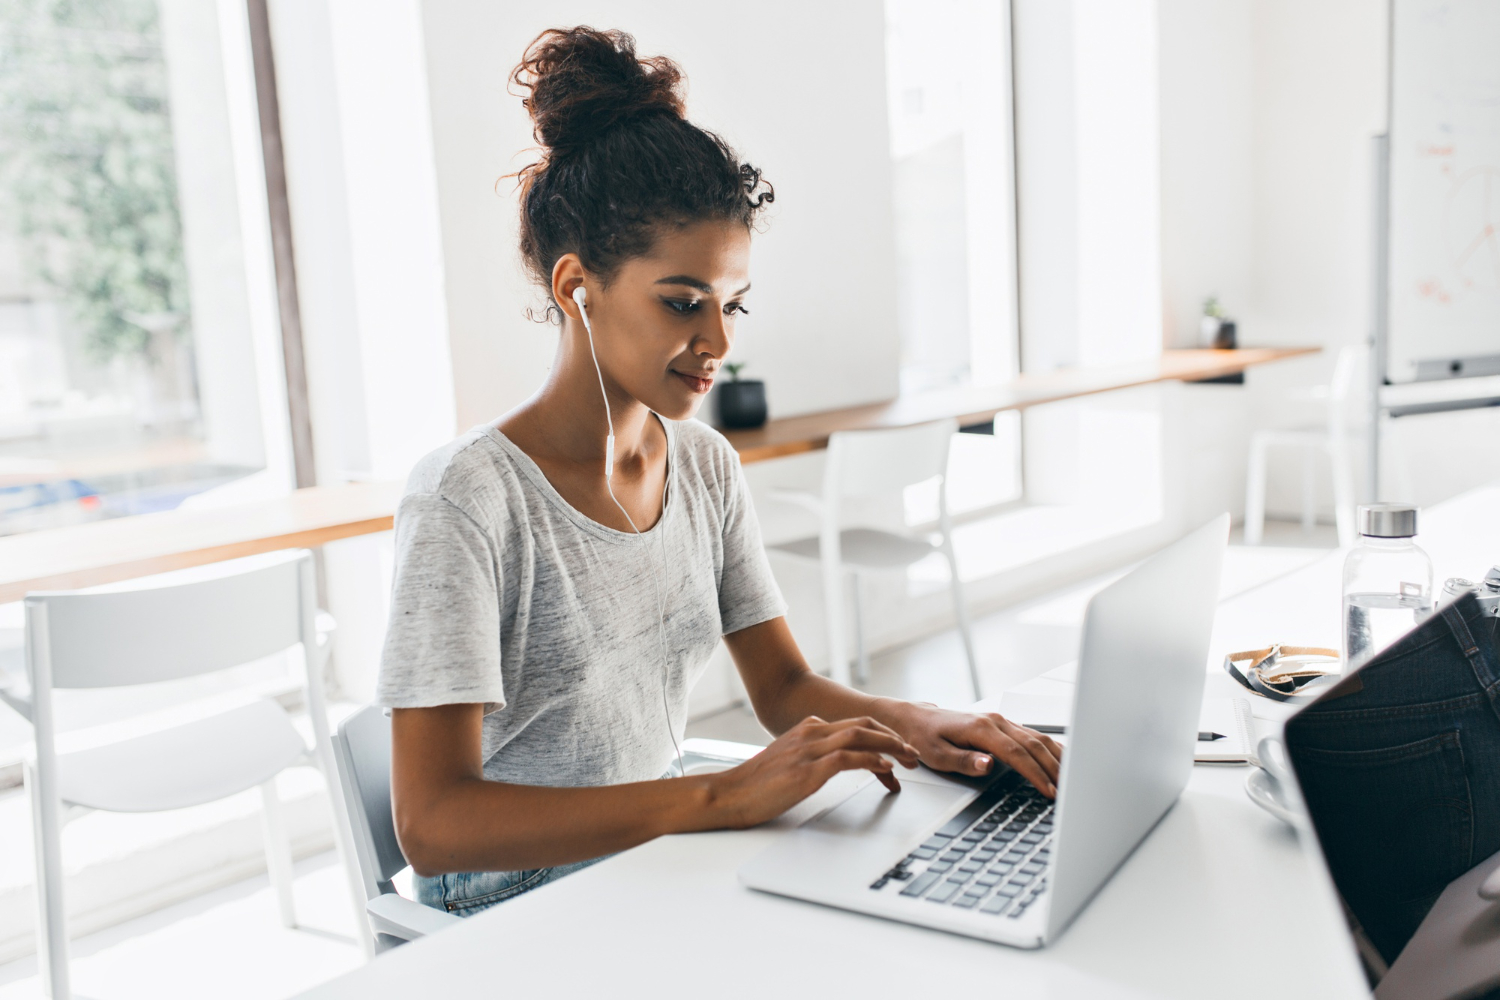 Black female student using a laptop in a bright room